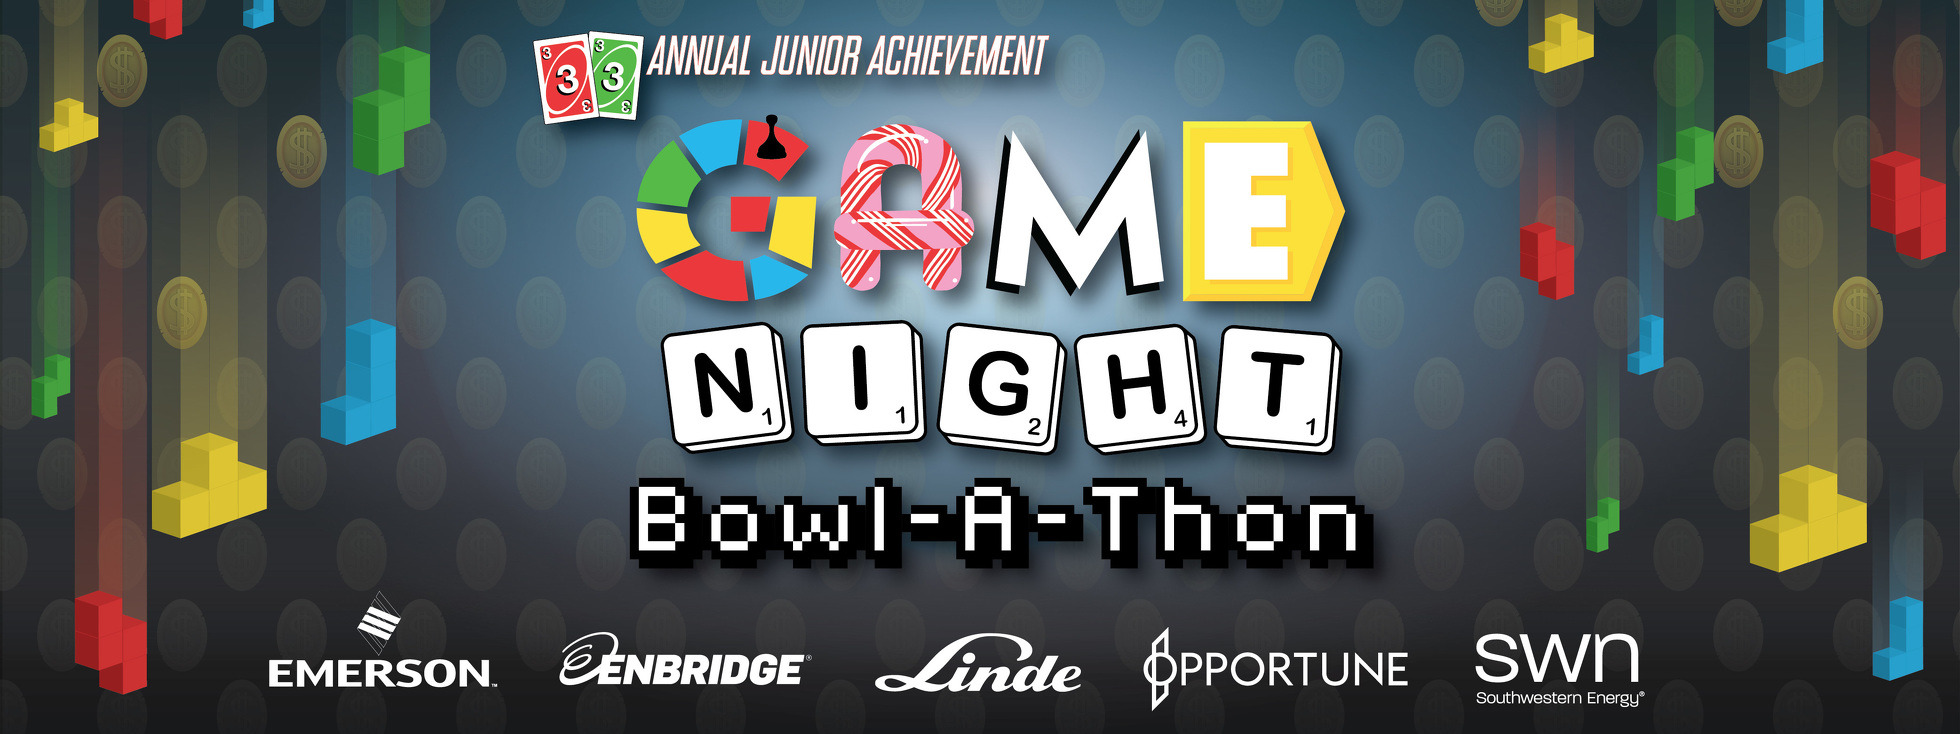 Opportune Bowl-A-Thon 2019